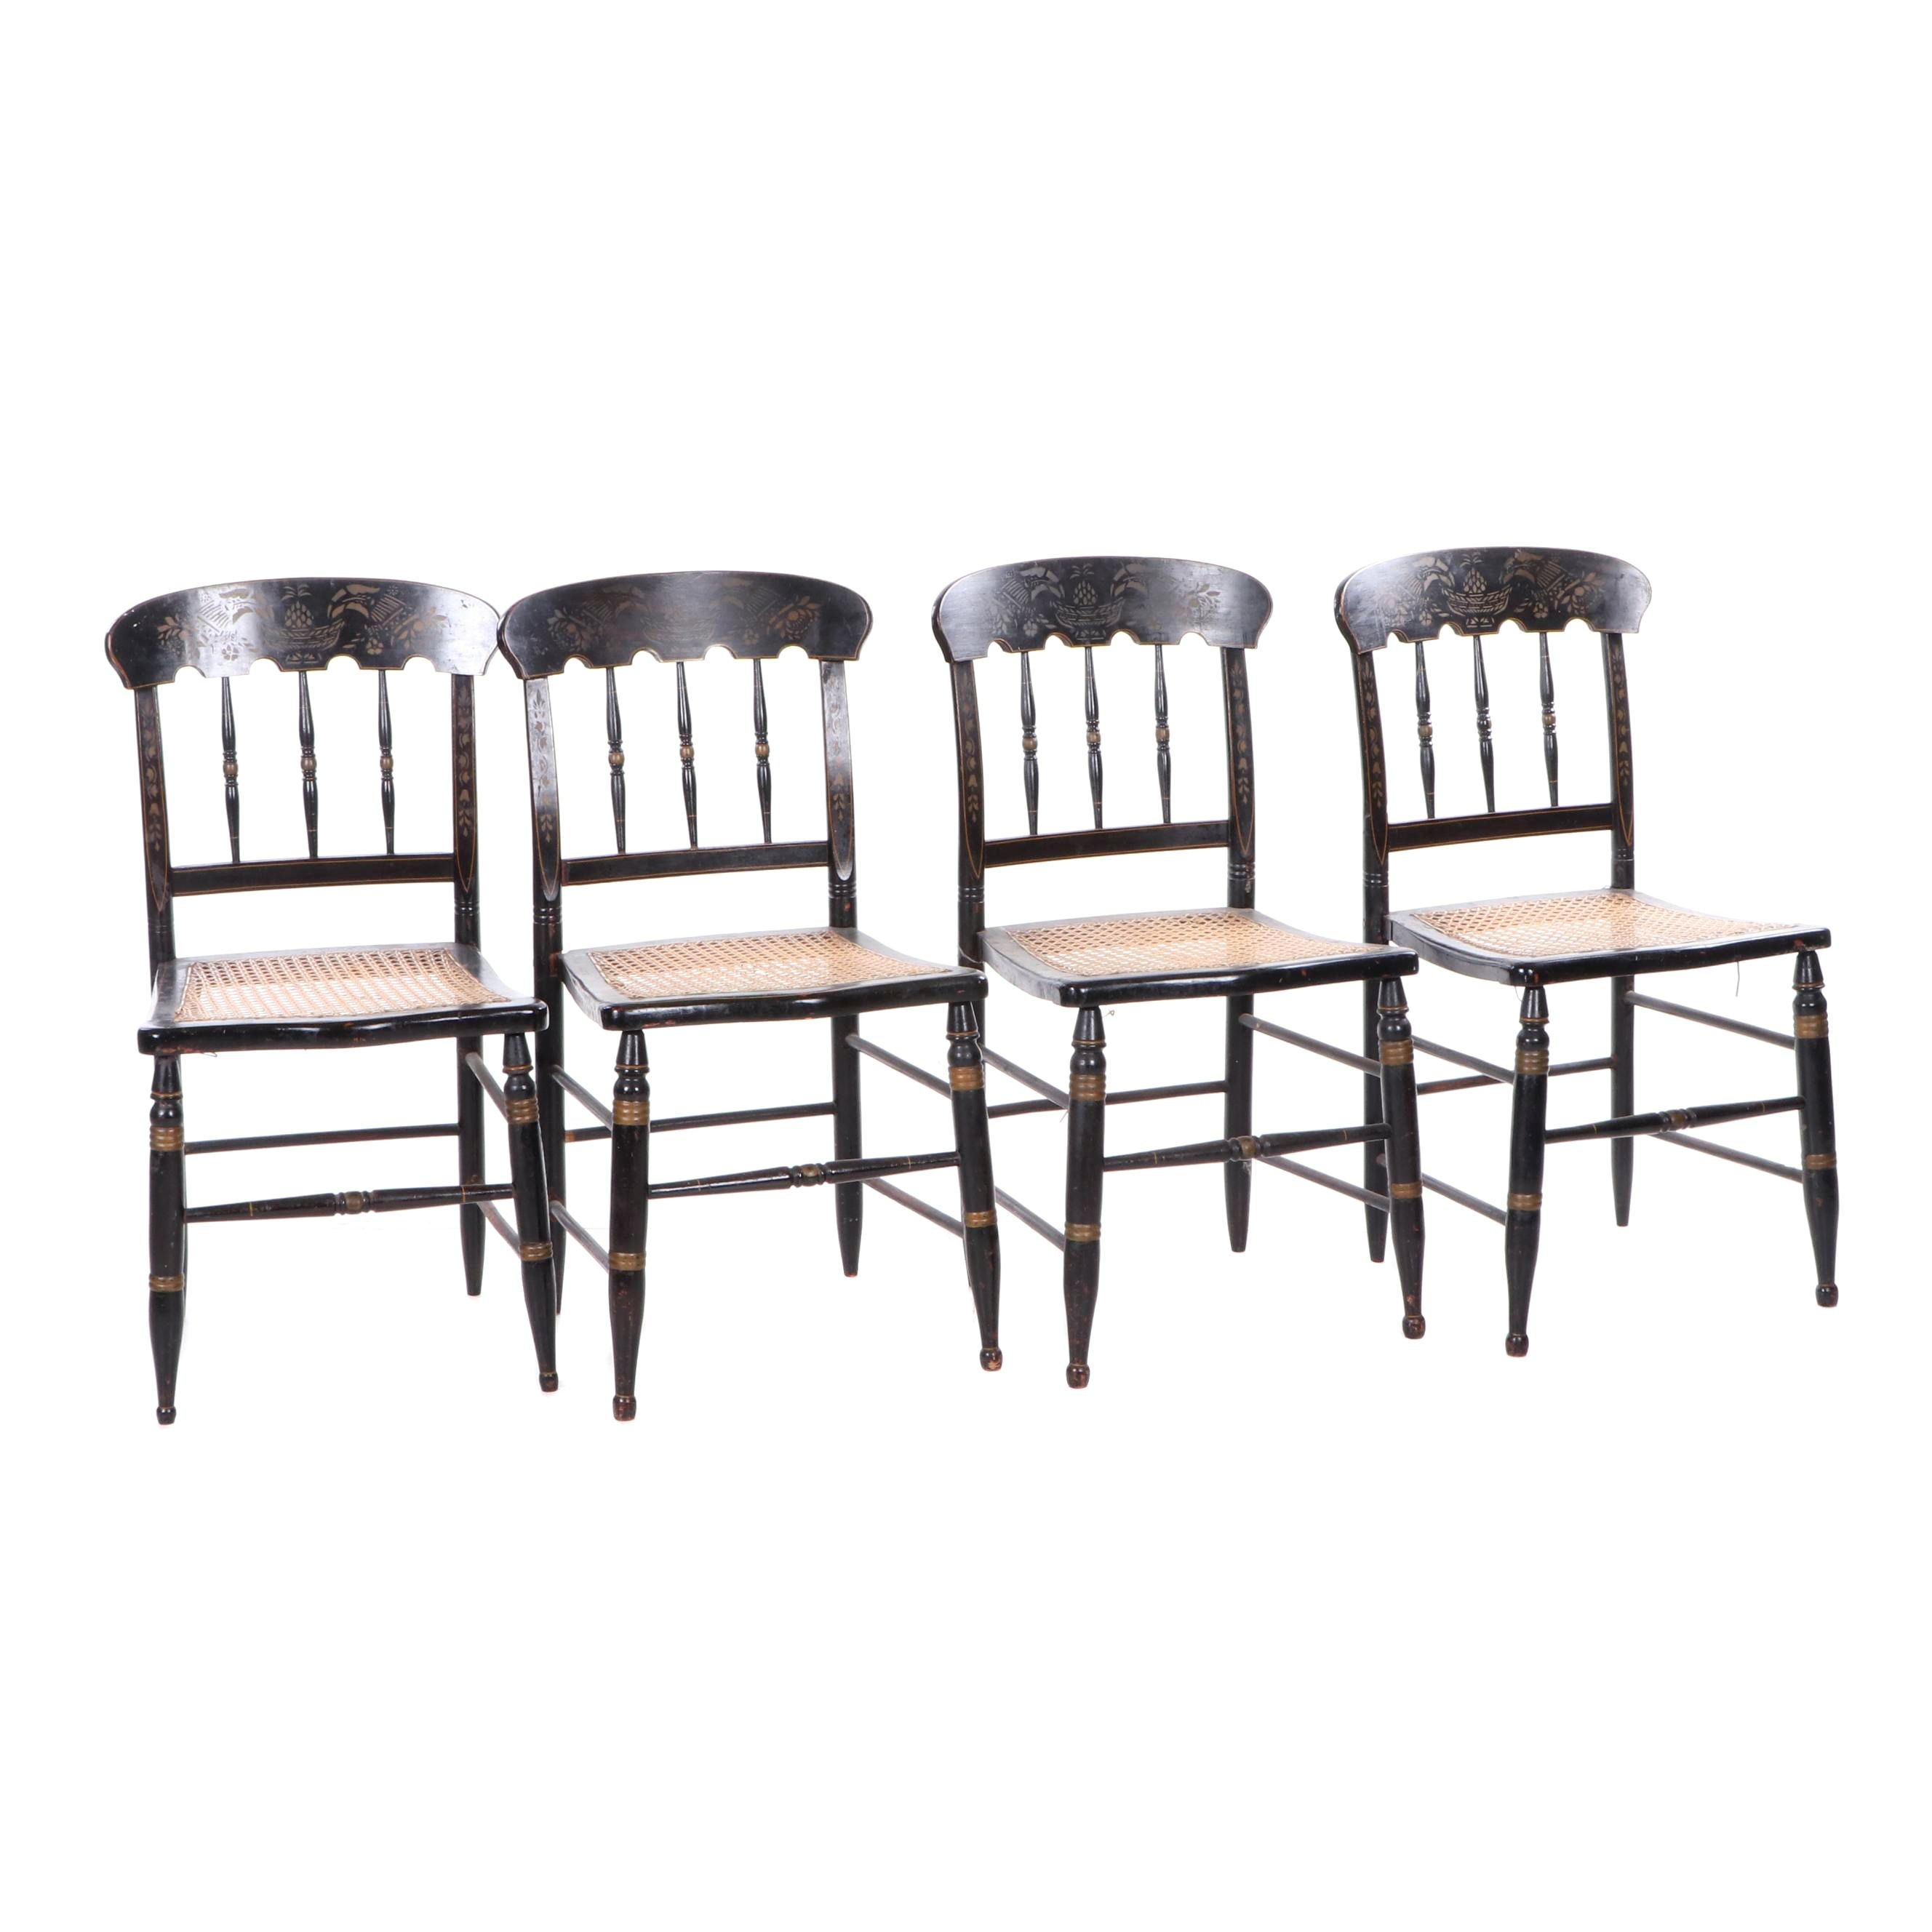 Hitchcock Style Painted and Stenciled Wood Chairs with Cane Seats, Late 19th C.